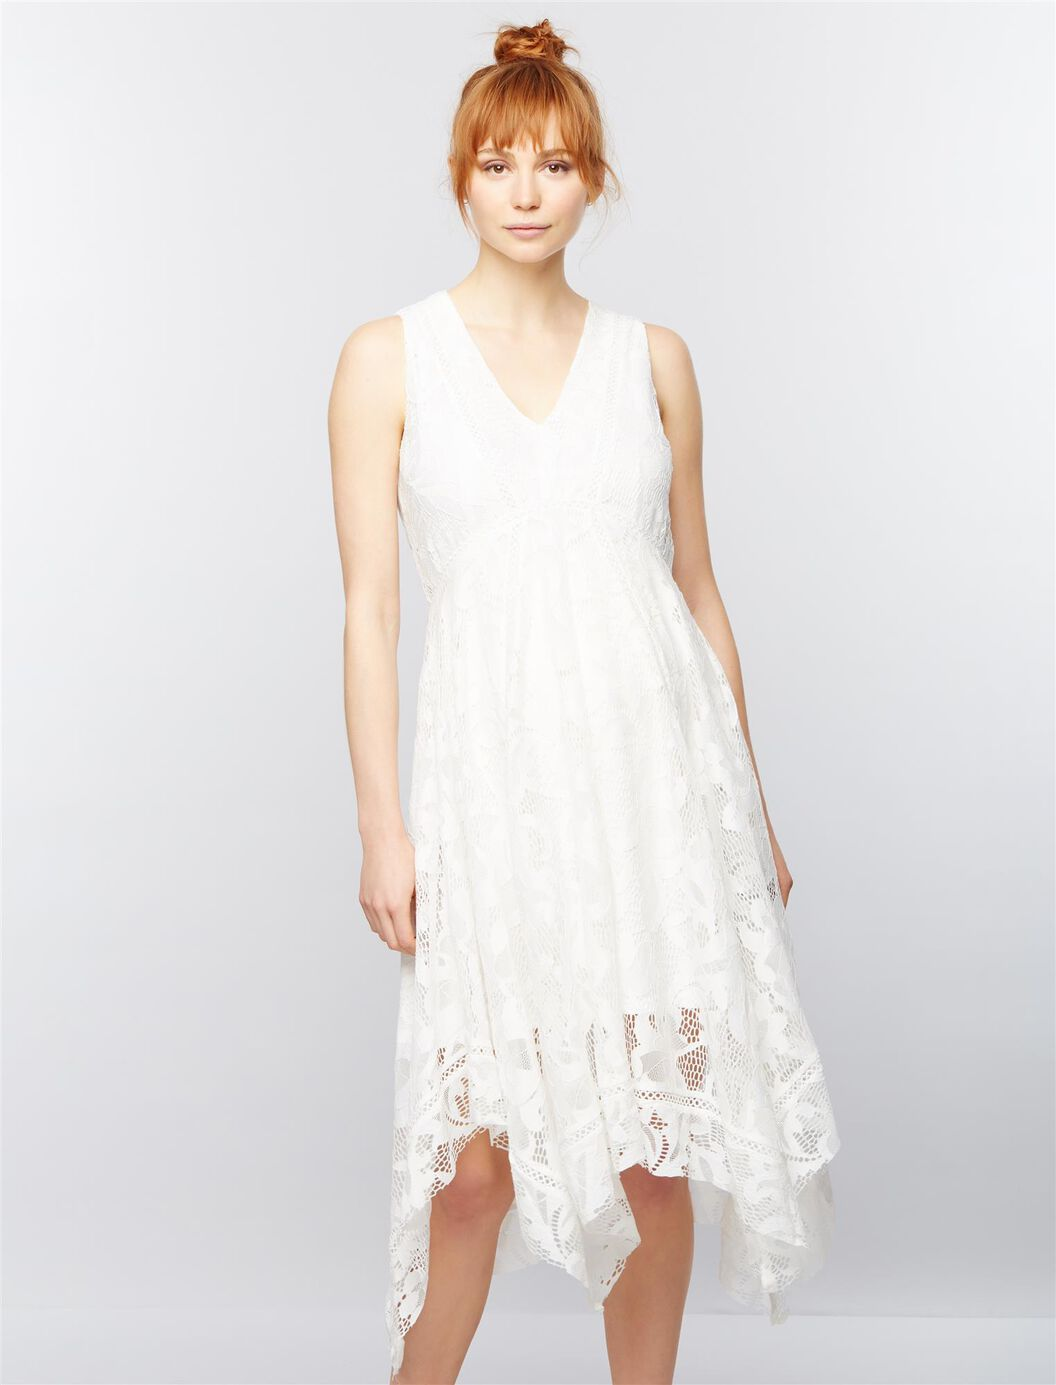 Taylor lace maternity dress a pea in the pod maternity taylor lace maternity dress white ombrellifo Choice Image